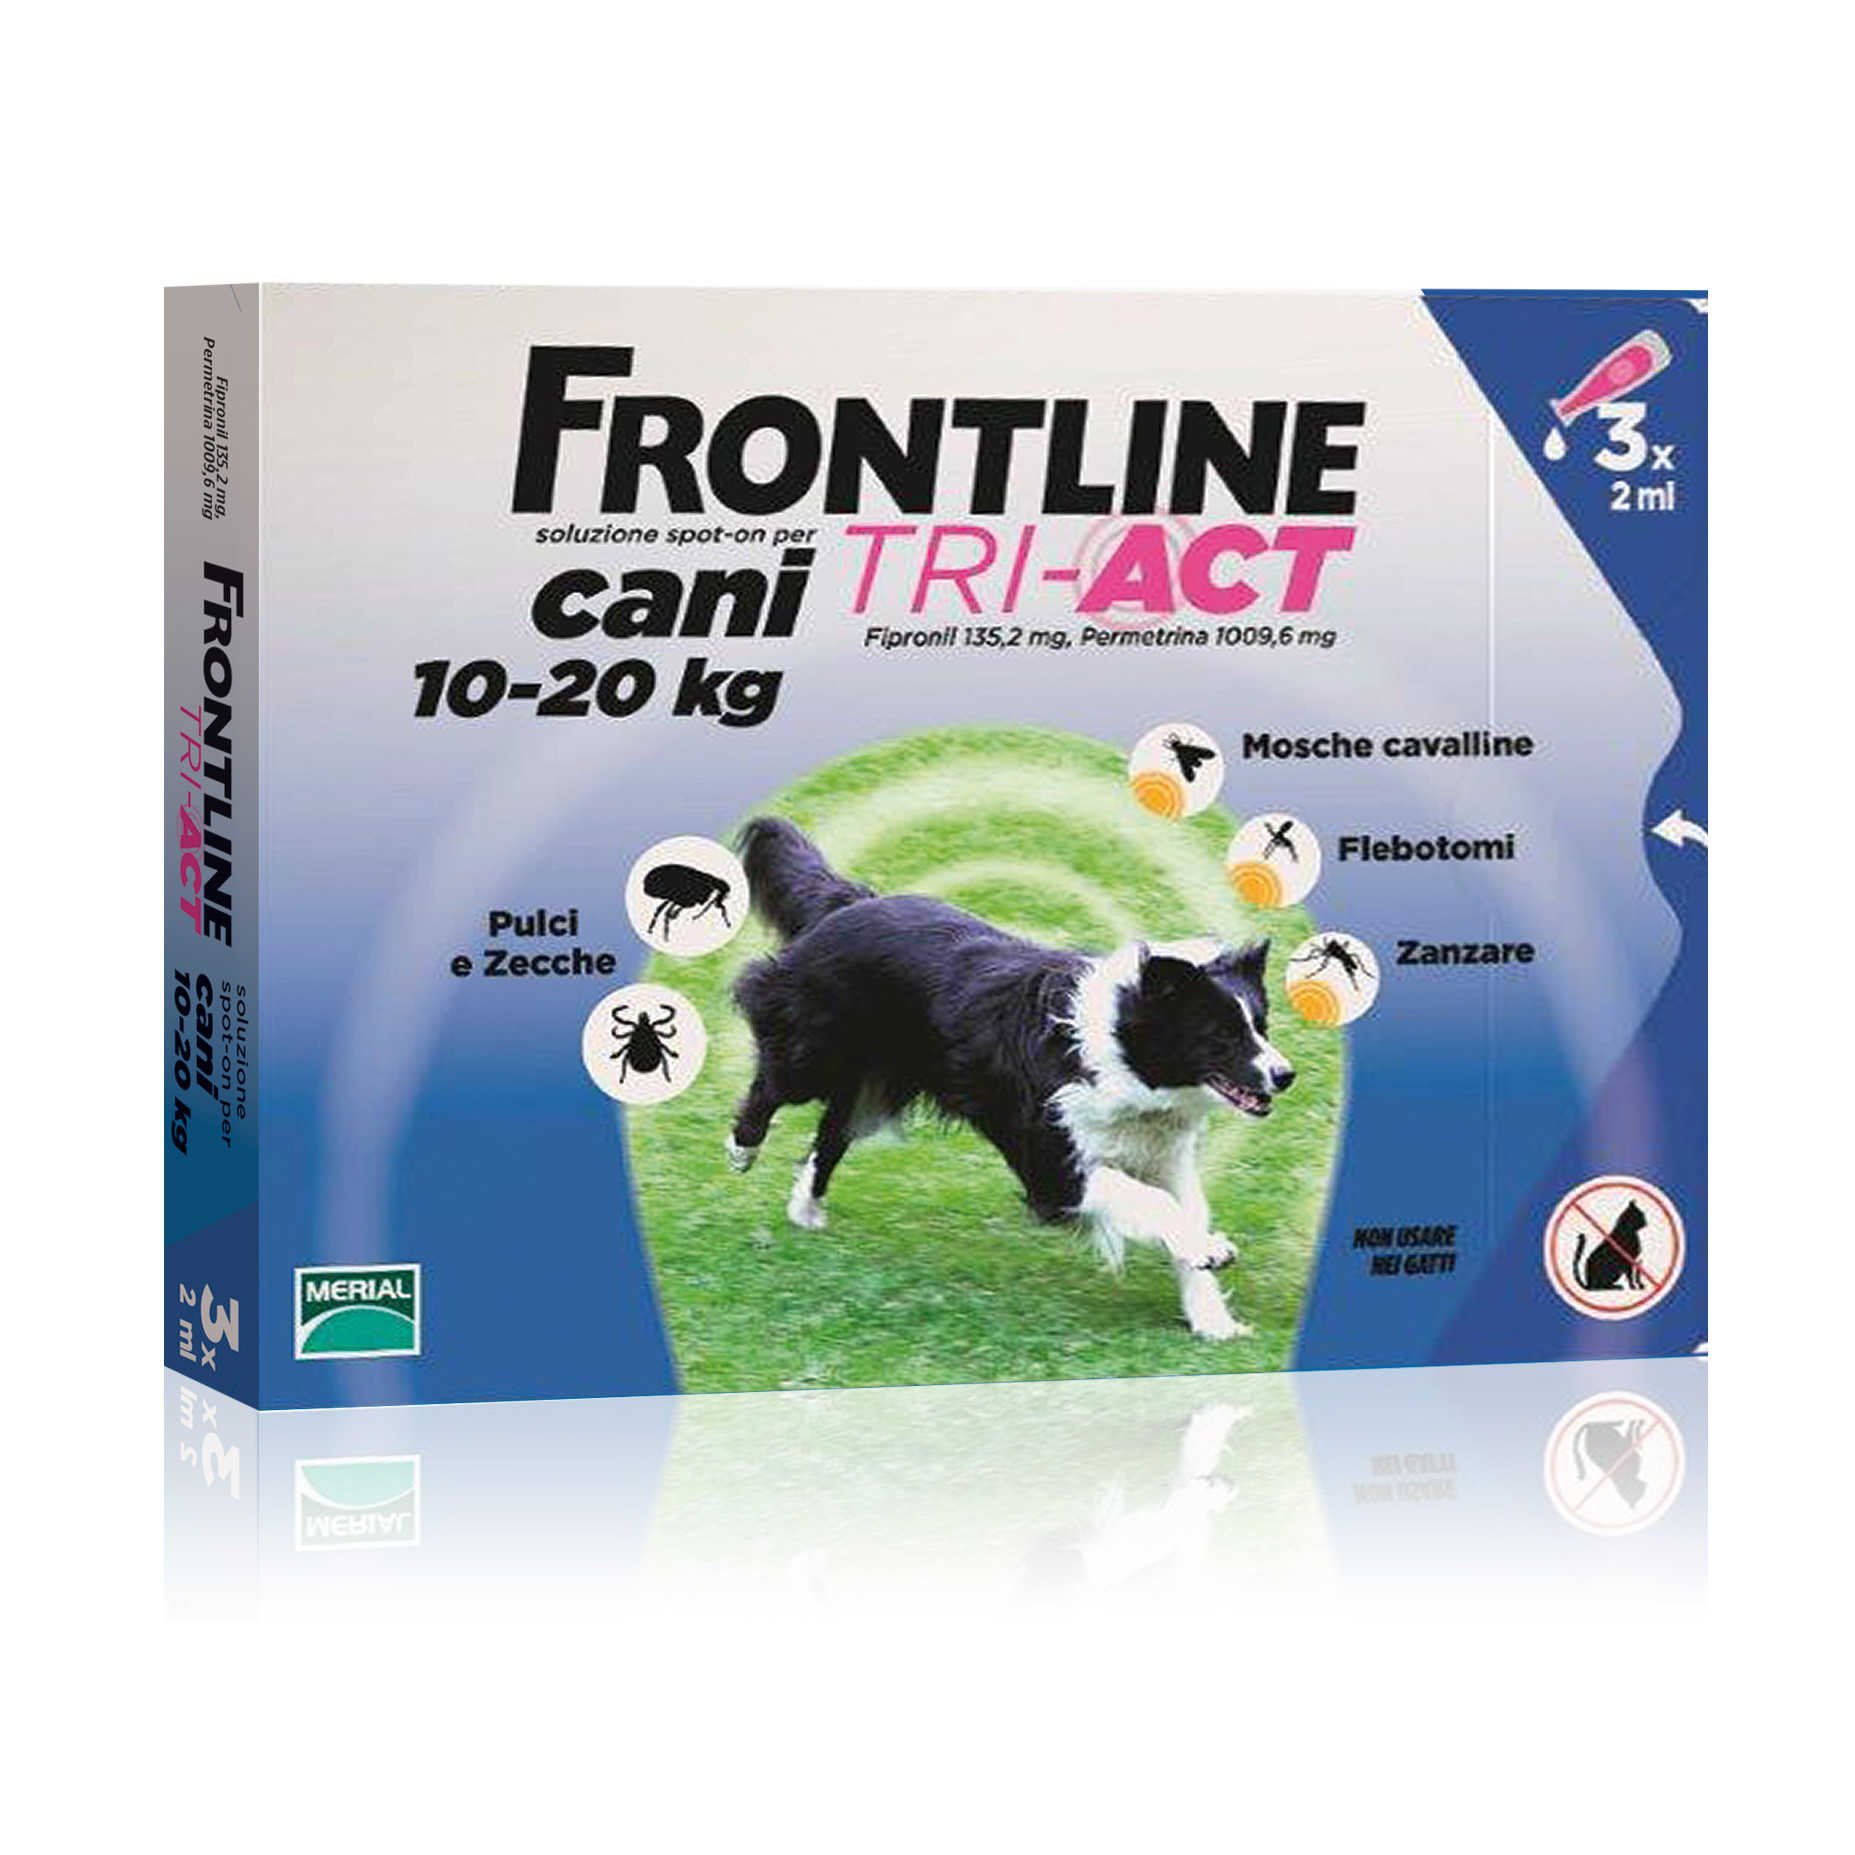 Frontline Combo - Tri Act - Cani 10-20 kg